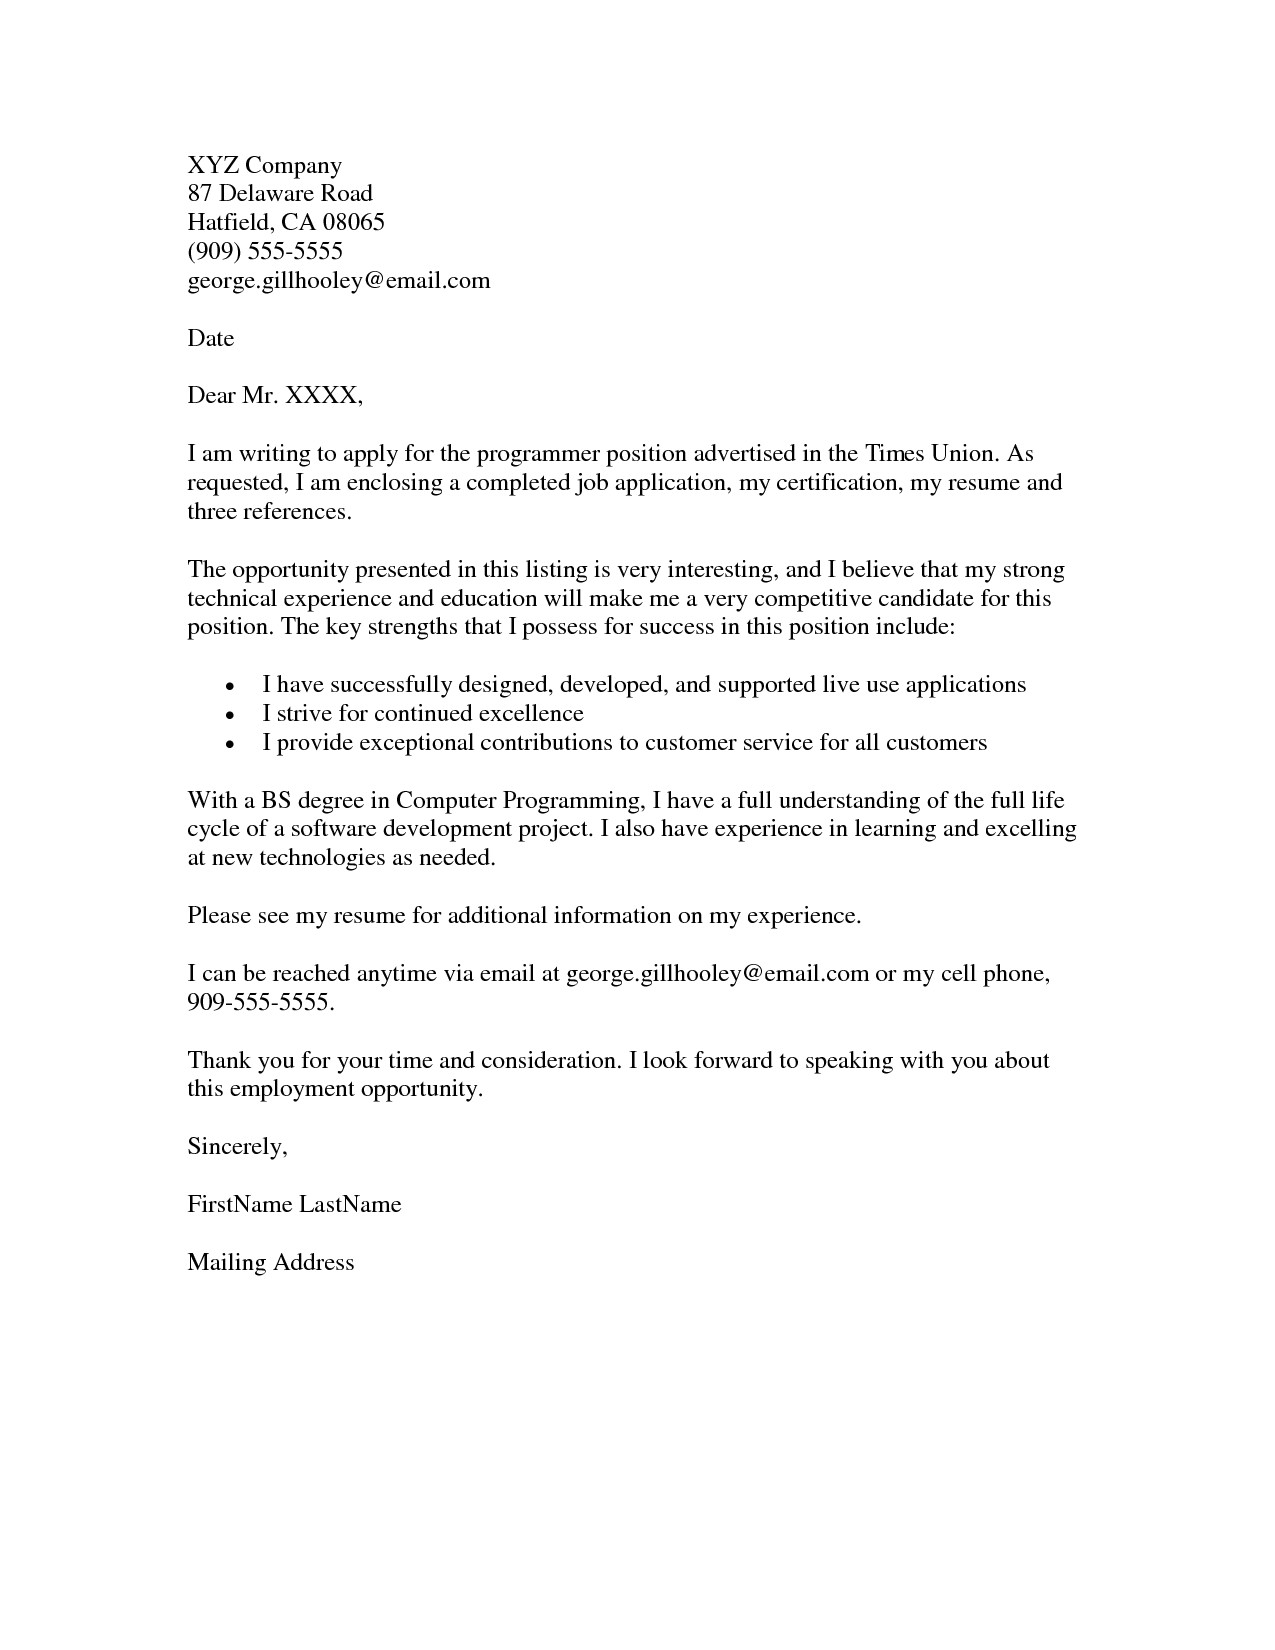 What is A Cover Letter On A Job Application Job Application Cover Letter Example Resumes Job